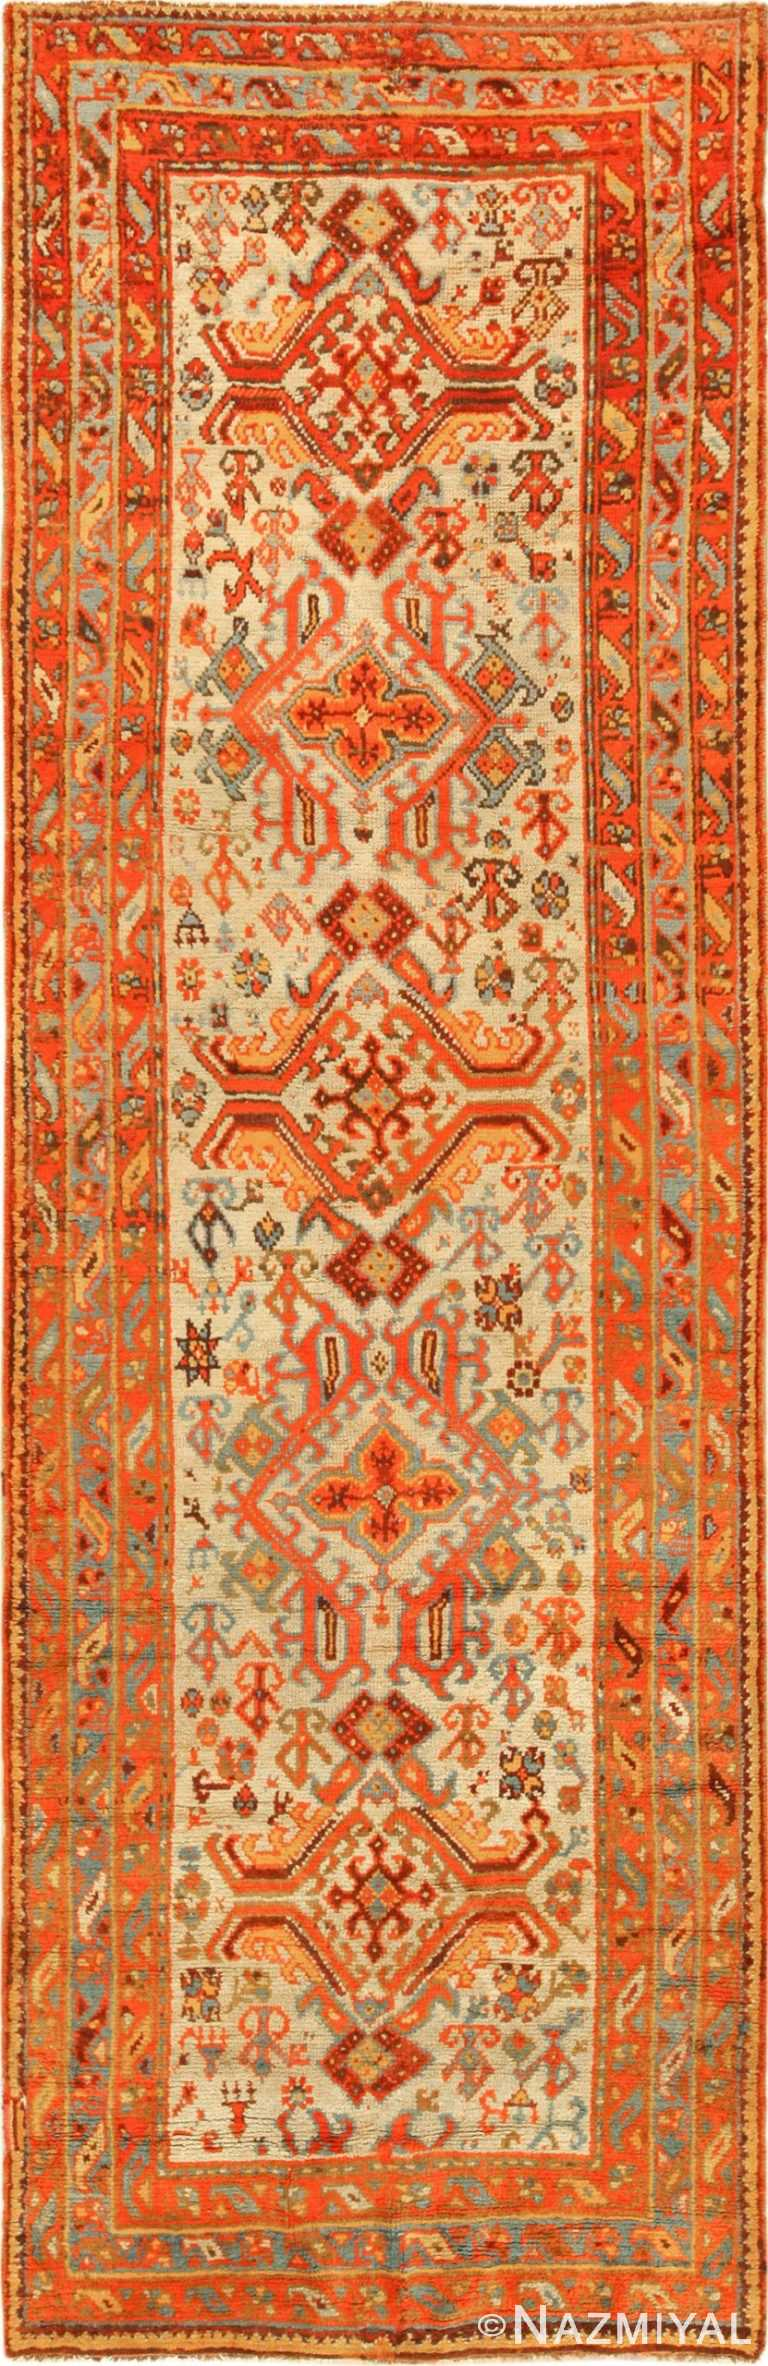 antique oushak turkish rug runner 49364 Nazmiyal